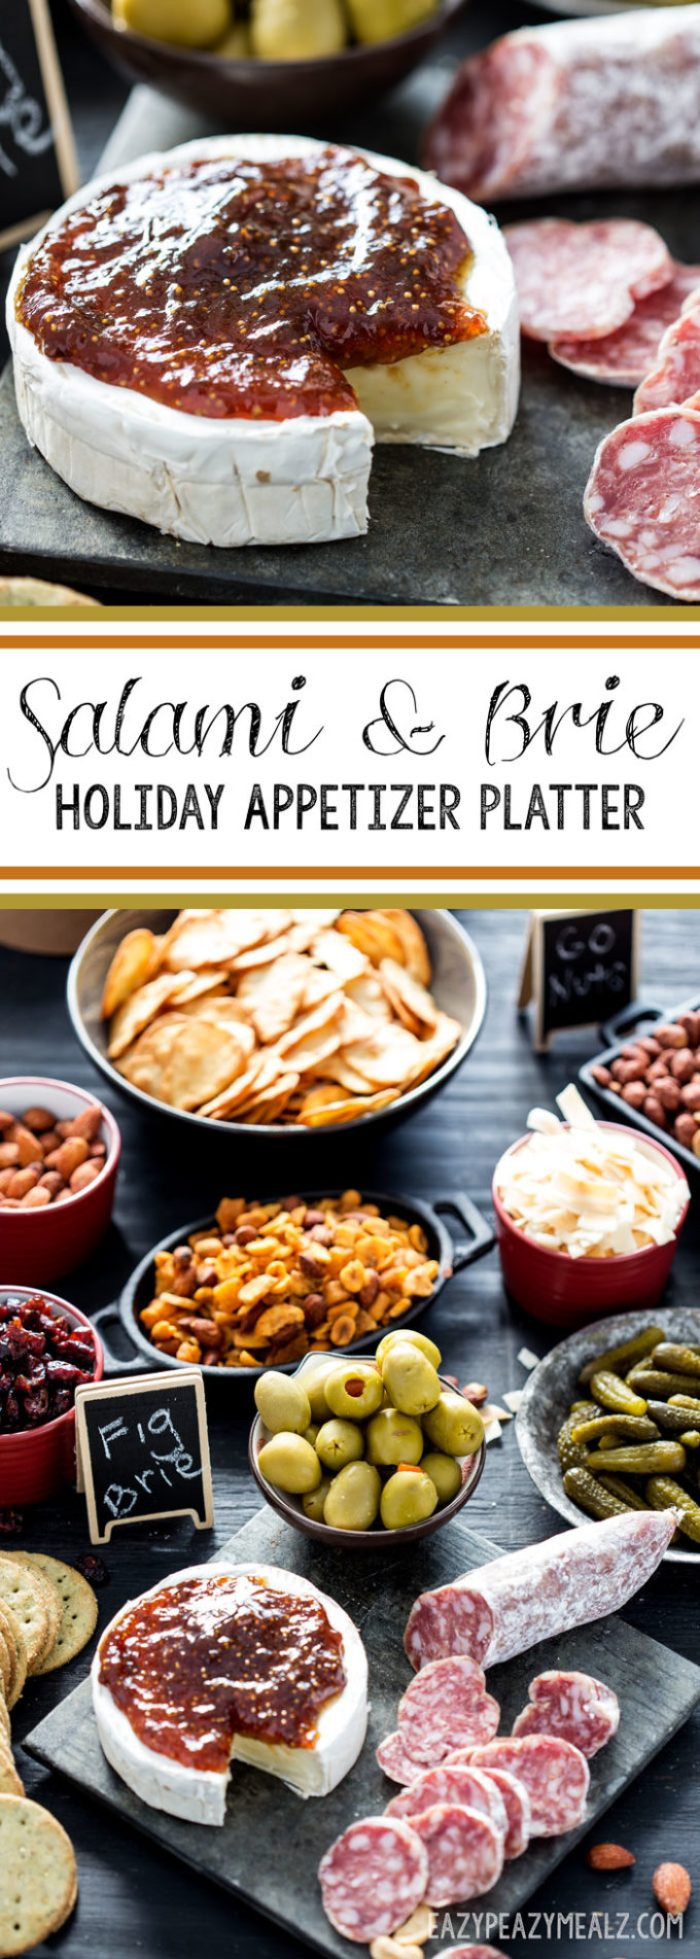 Salami and Brie are the foundation of a great holiday appetizer platter. The Barolo Salami pairs well with sweet and savory.